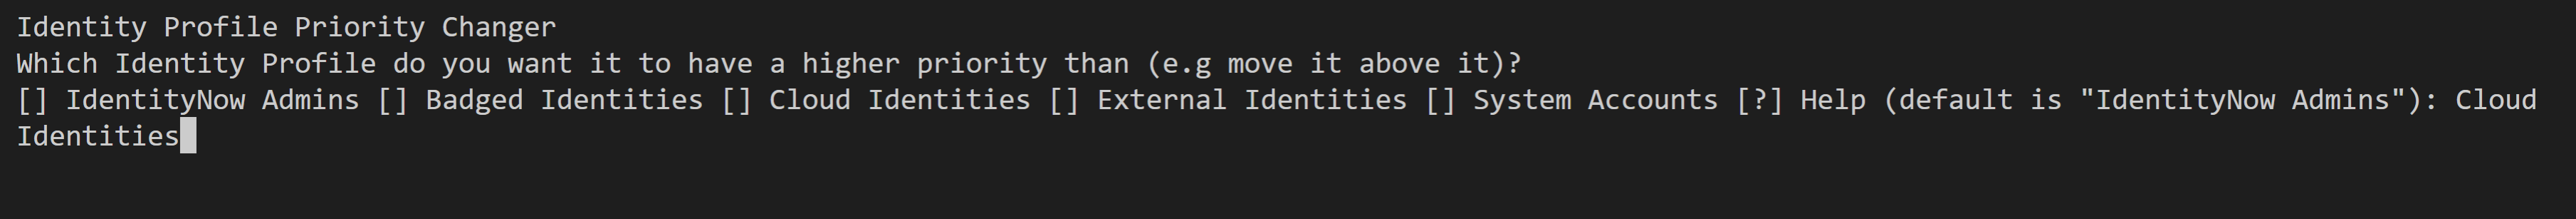 Identity Profile Priority Changer 2a.PNG